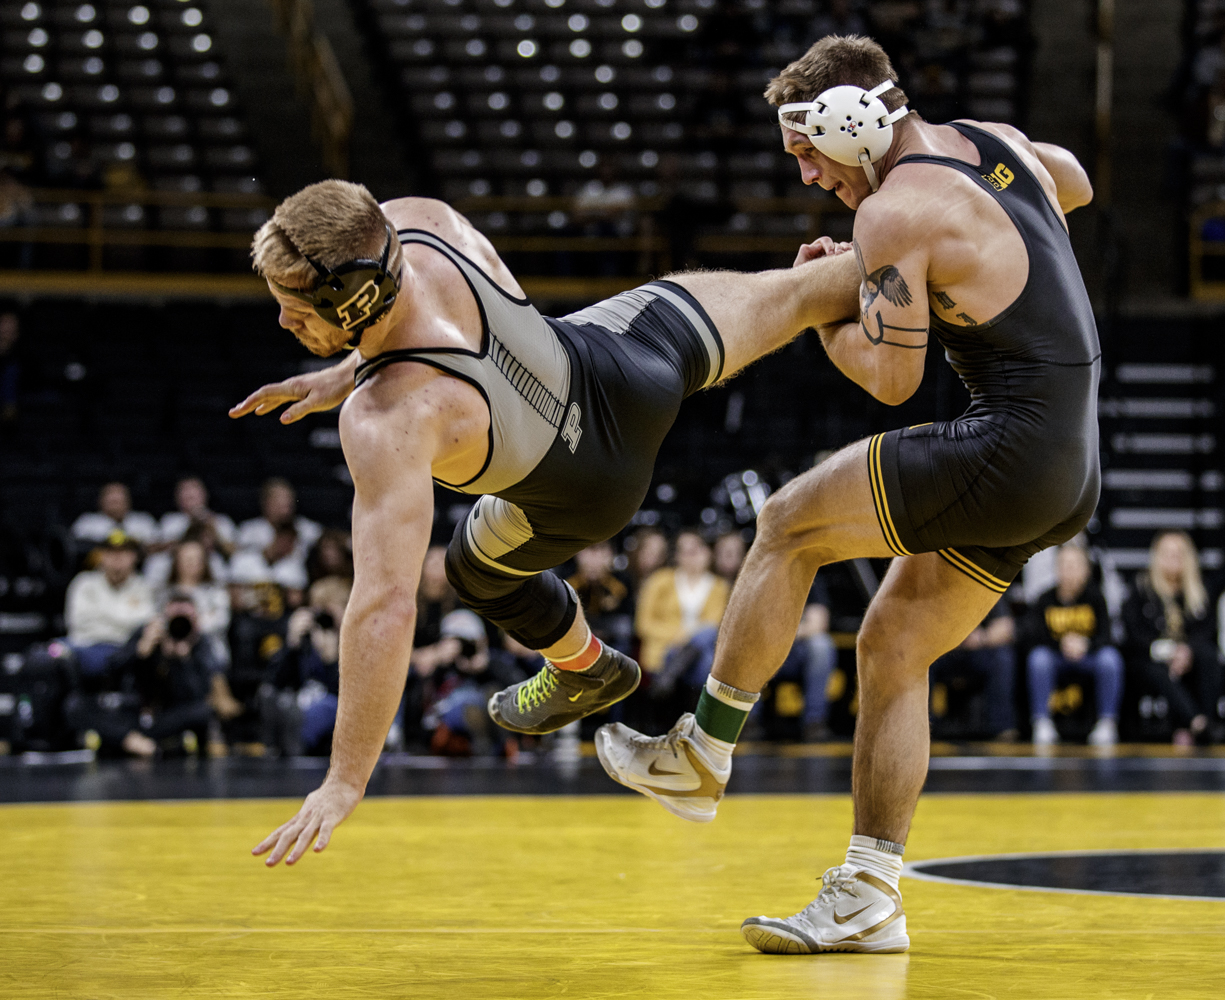 Iowa's Cash Wilcke takes down Purdue's Max Lyon during Iowa's dual meet against Purdue at Carver-Hawkeye Arena in Iowa City on Saturday, November 24, 2018. Wilcke defeated Lyon 12-4 in a major decision. The Hawkeyes defeated Boilermakers 26-9.